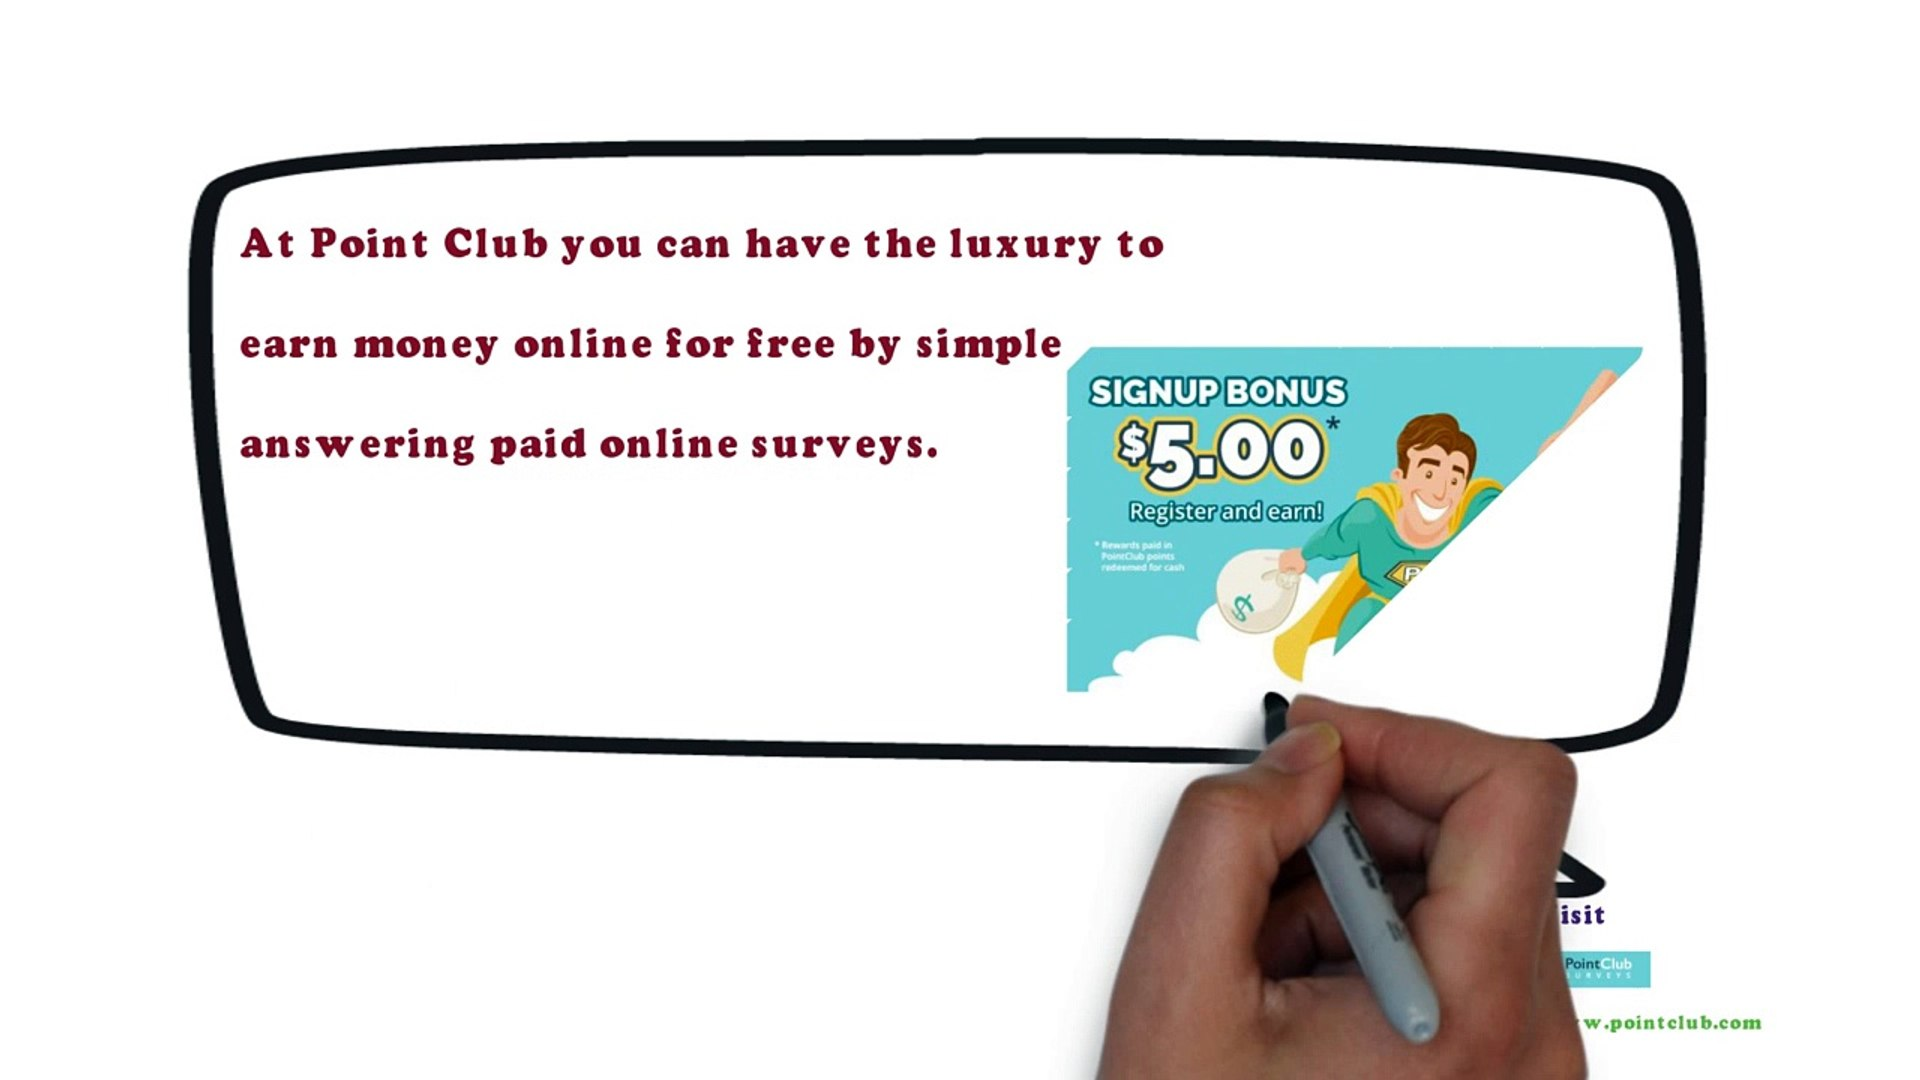 Start earning now by answering paid online surveys